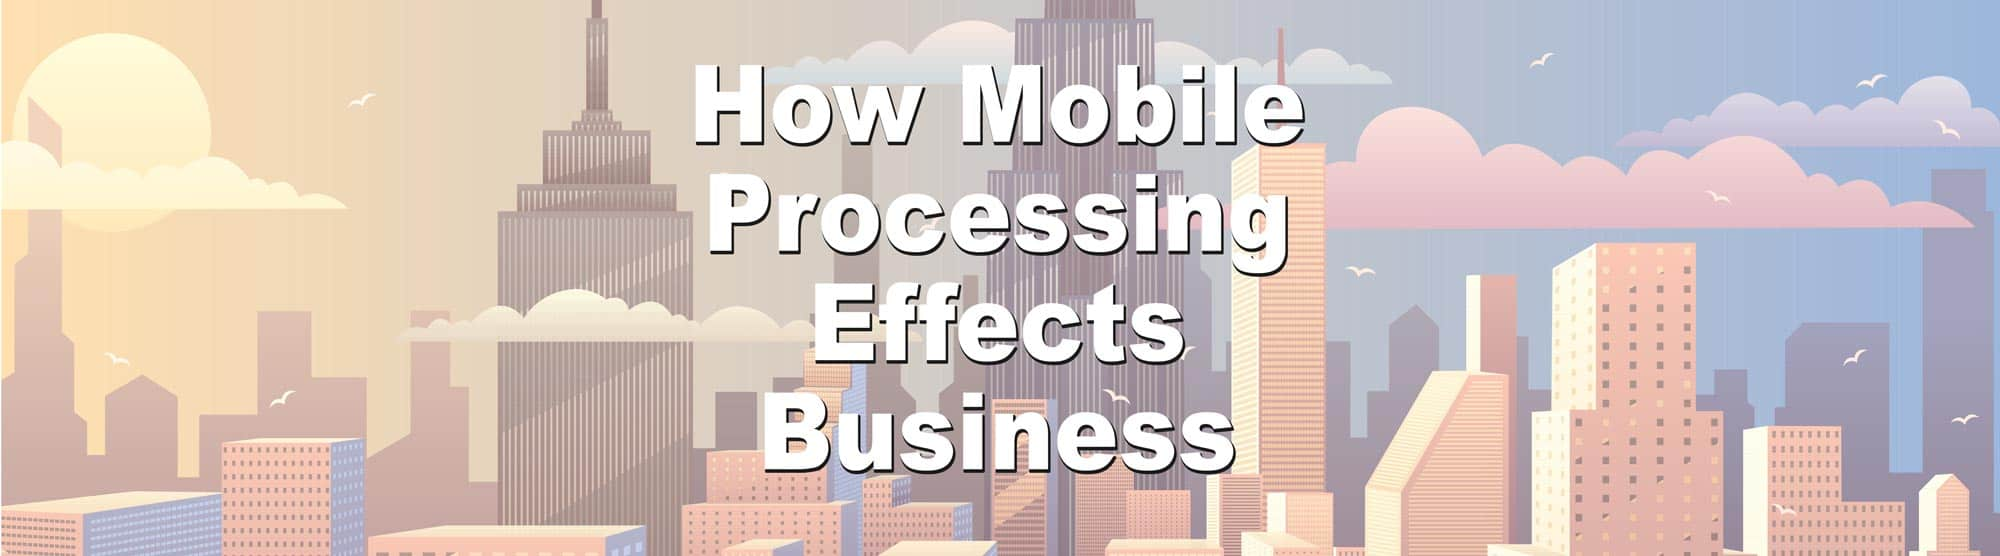 mobile payment processing helps business